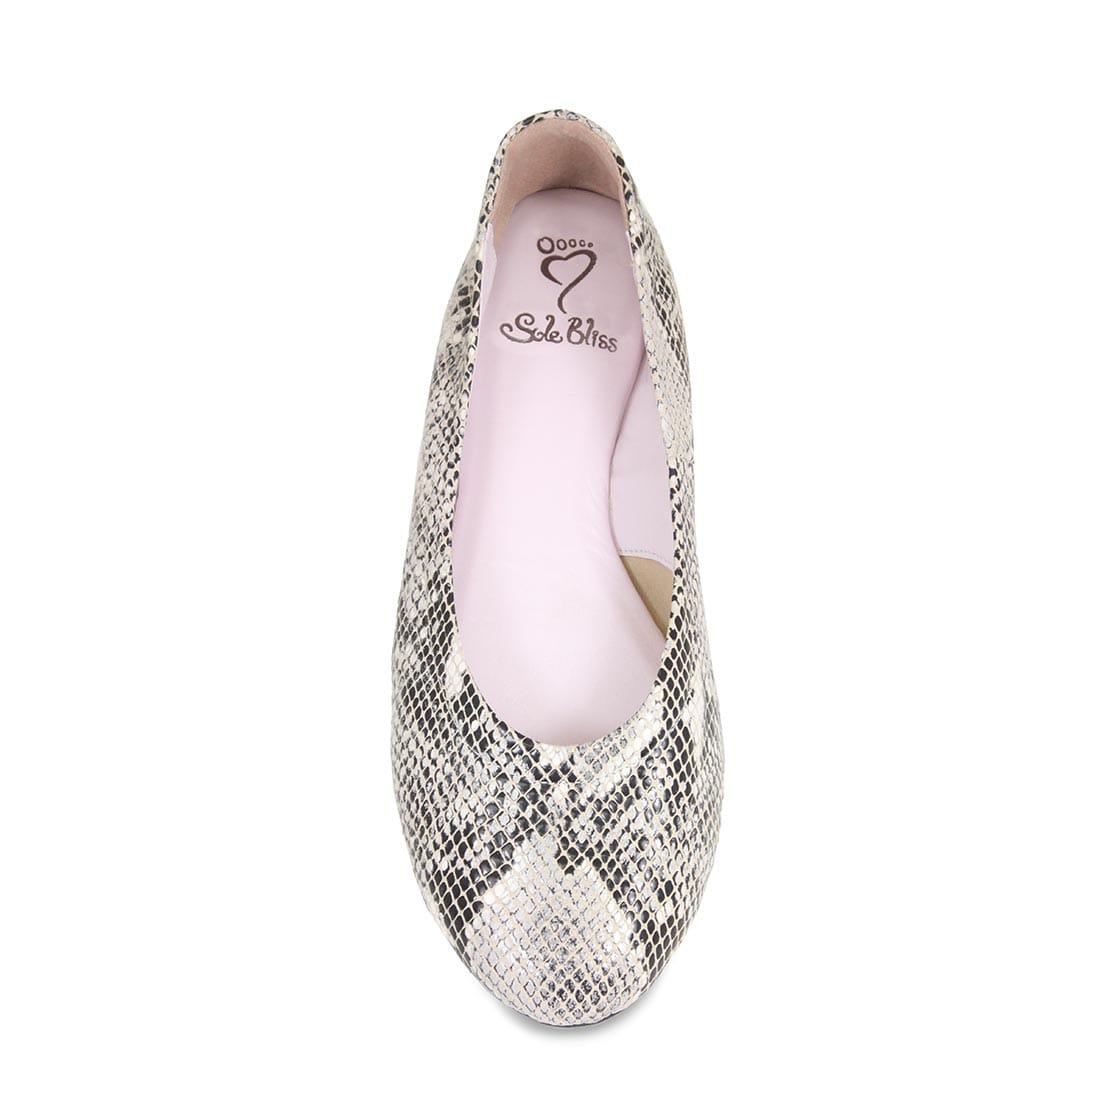 Gray Snake Print Leather Ballerina